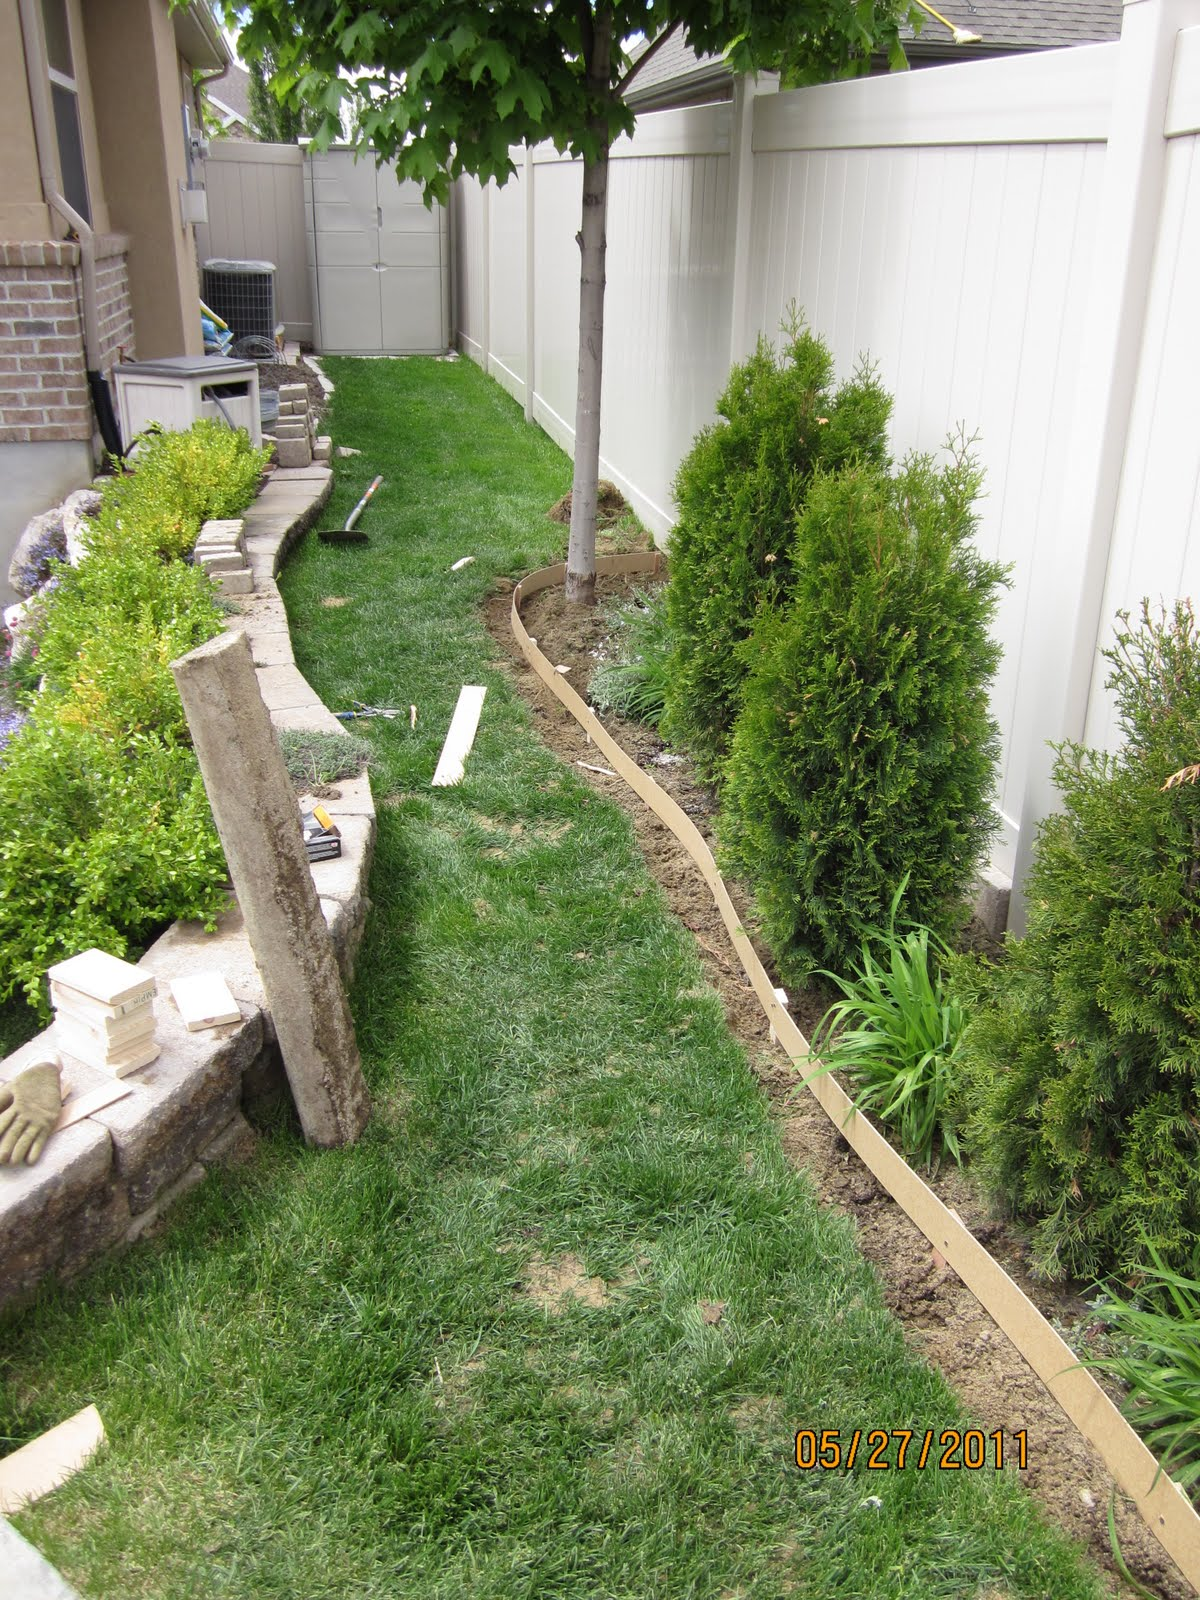 Our Adventures In Home Improvement DIY Curbing For The Backyard